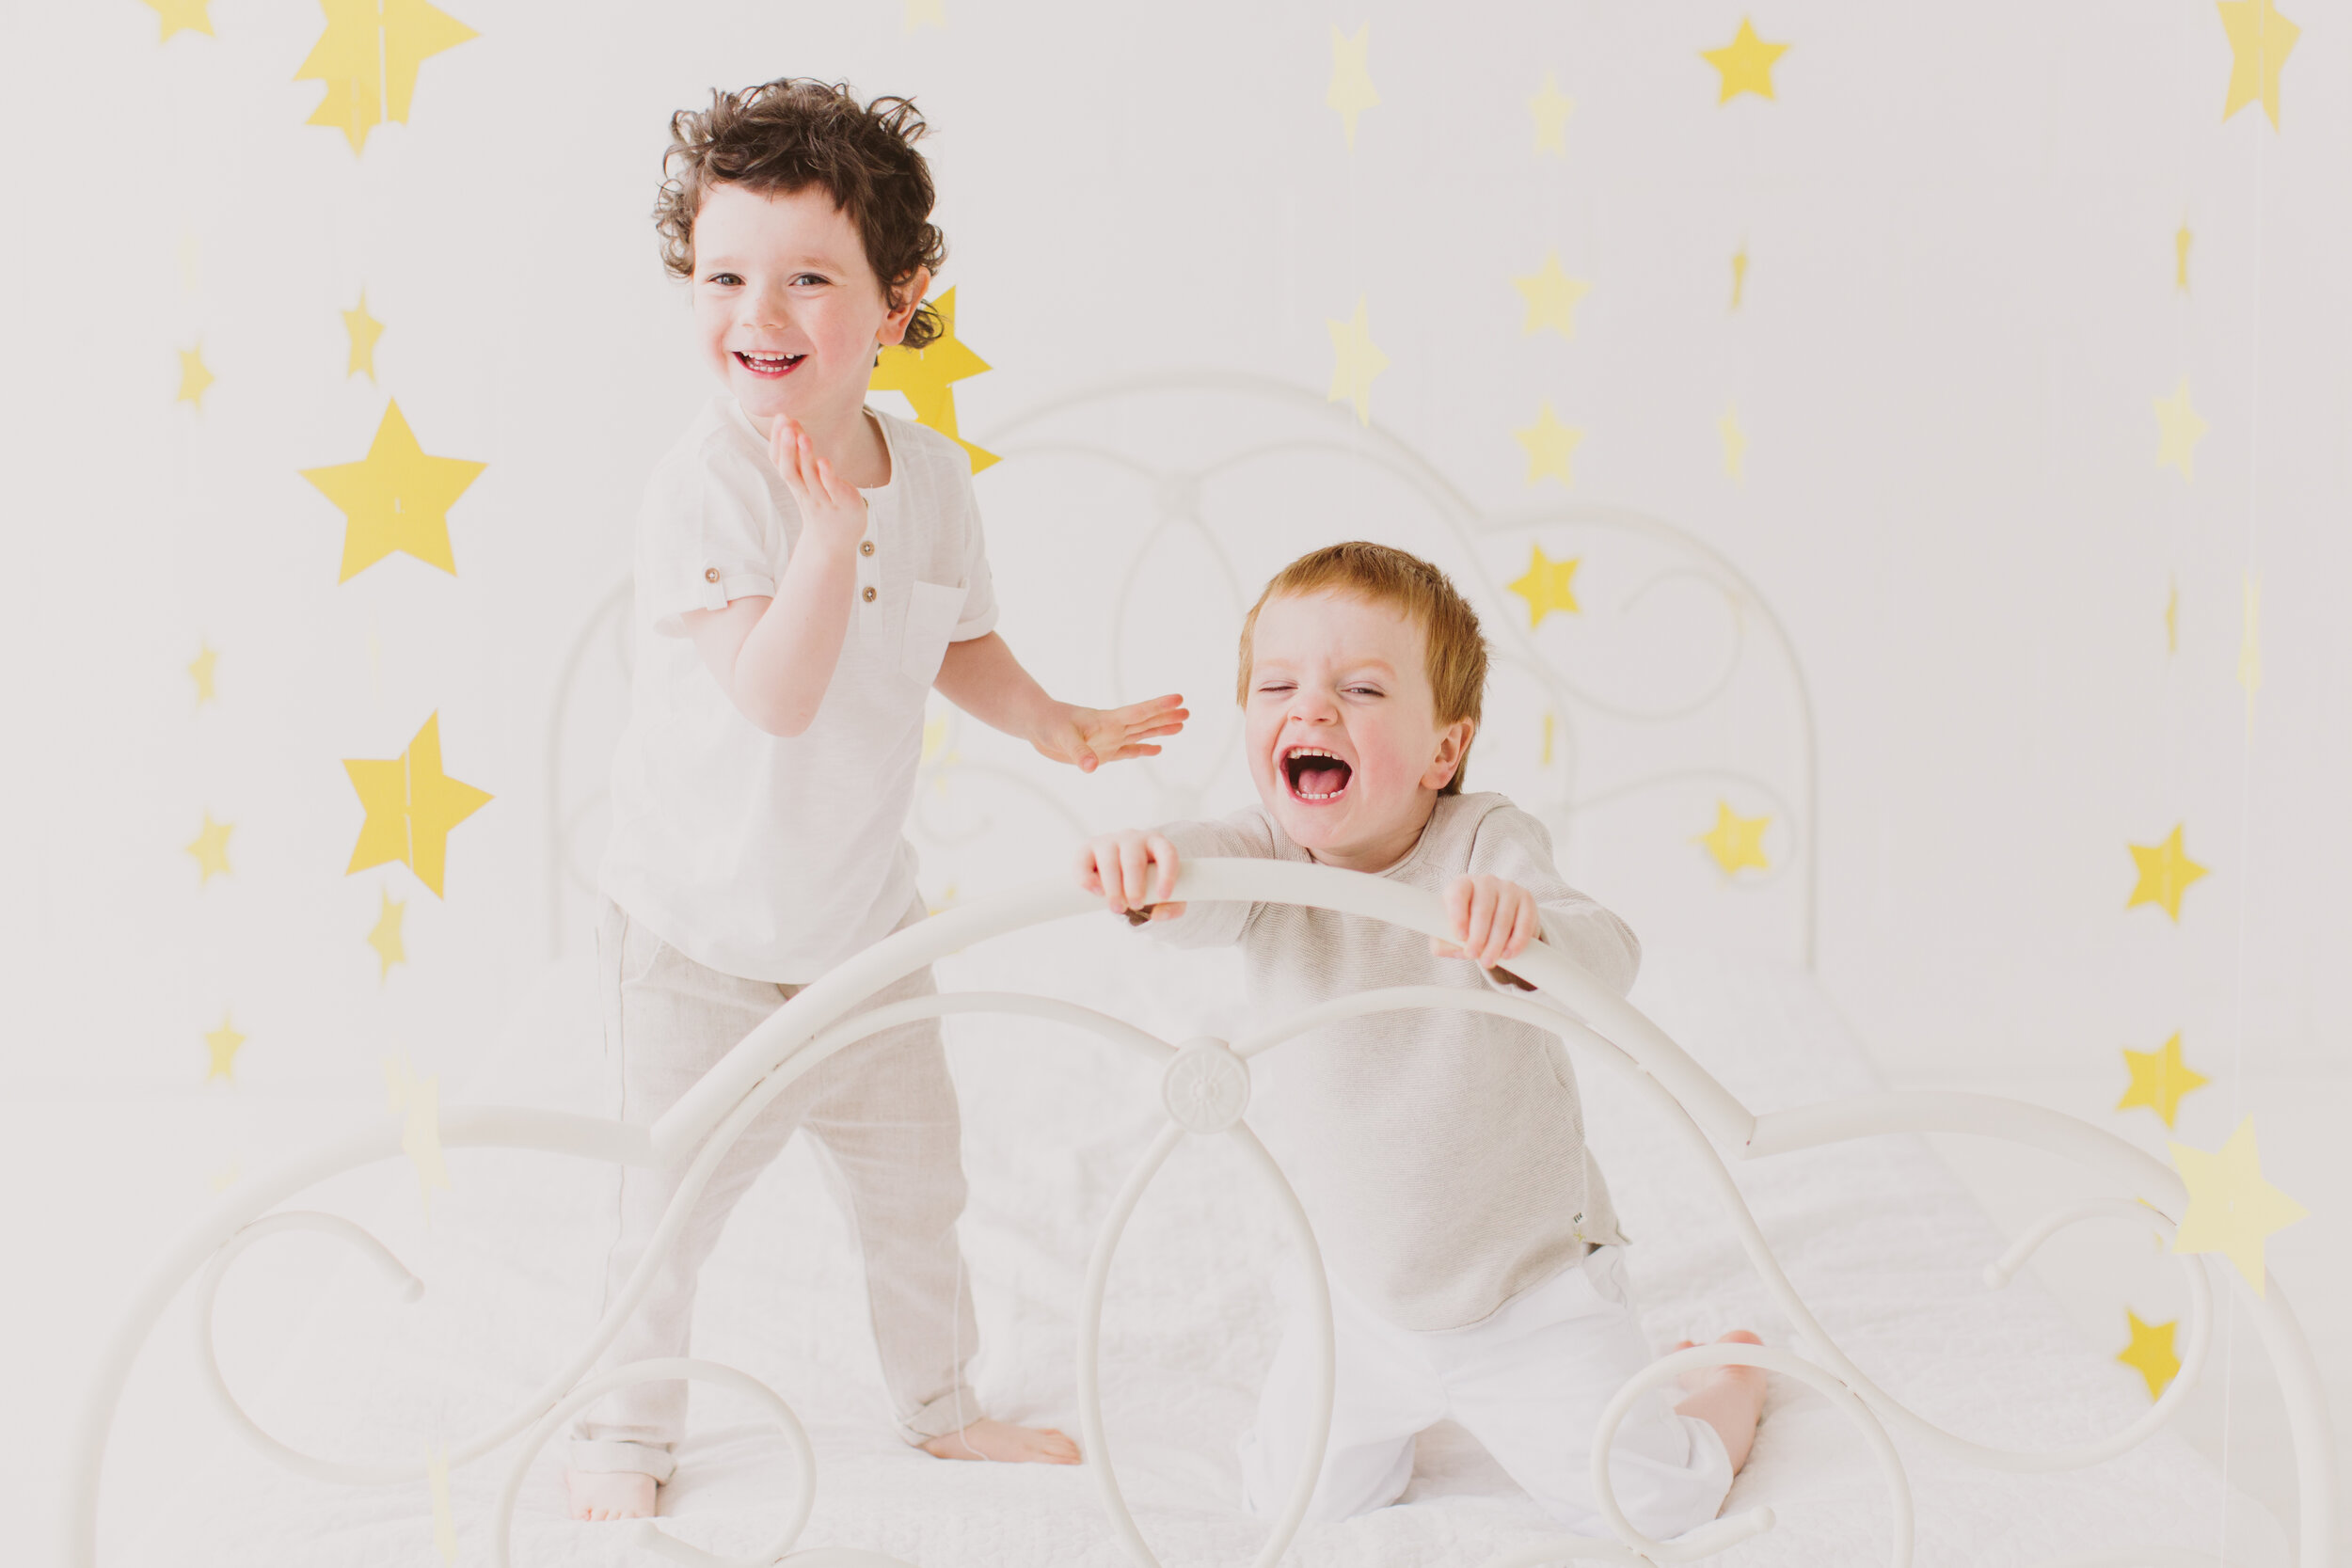 childrens-family-photographer-belfast-038.jpg